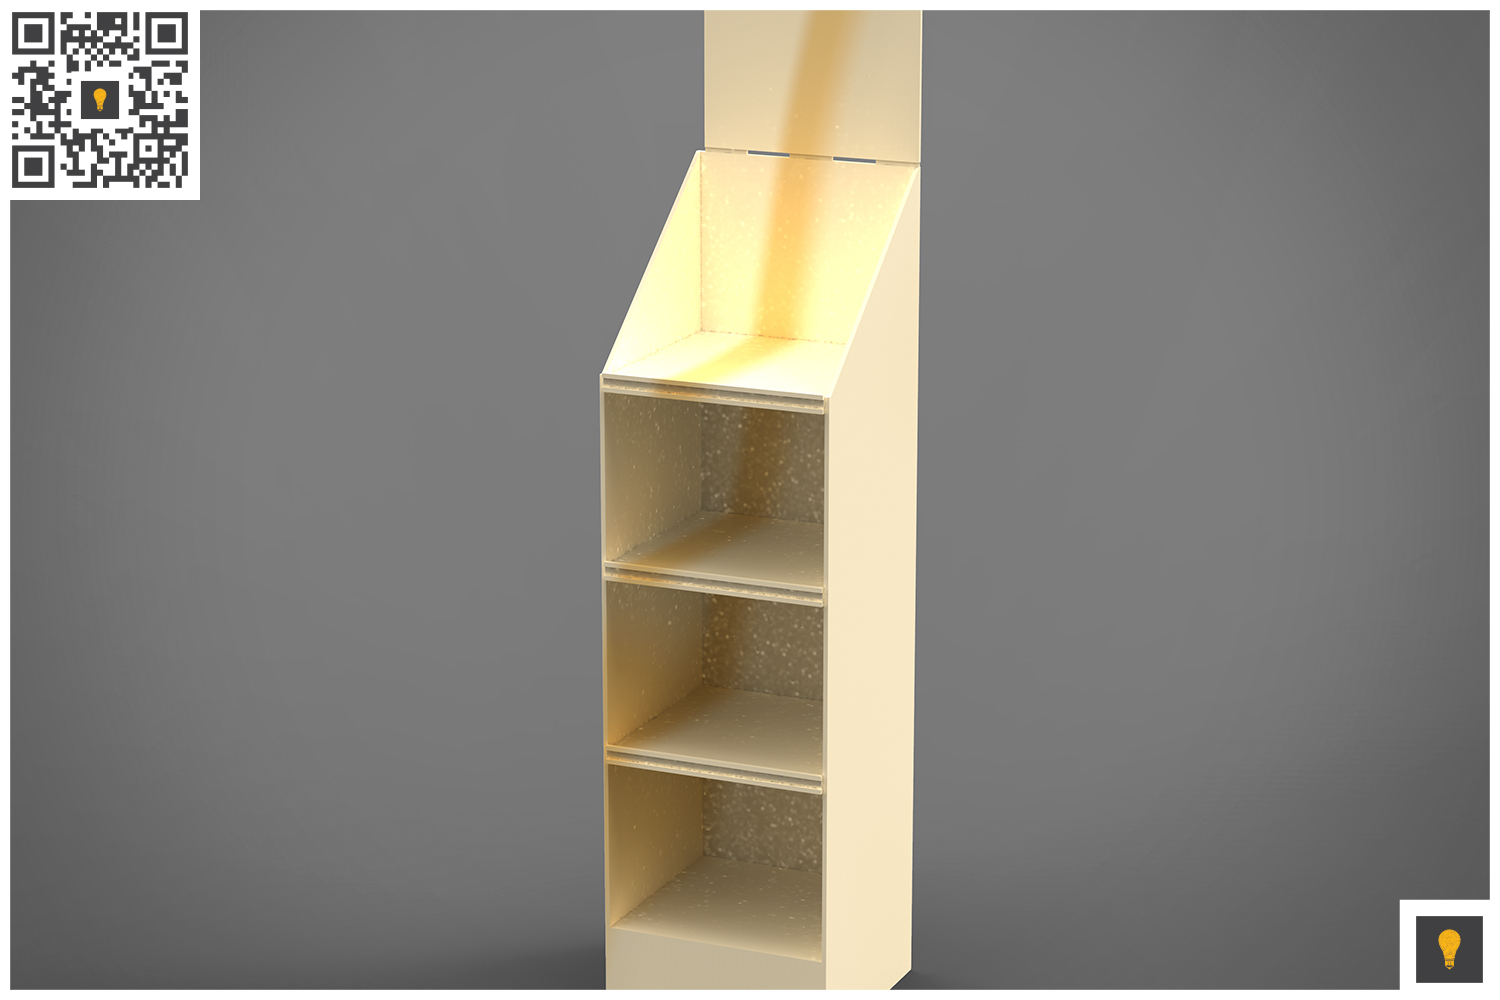 Promotional Store Shelf Stand 3D Render example image 13